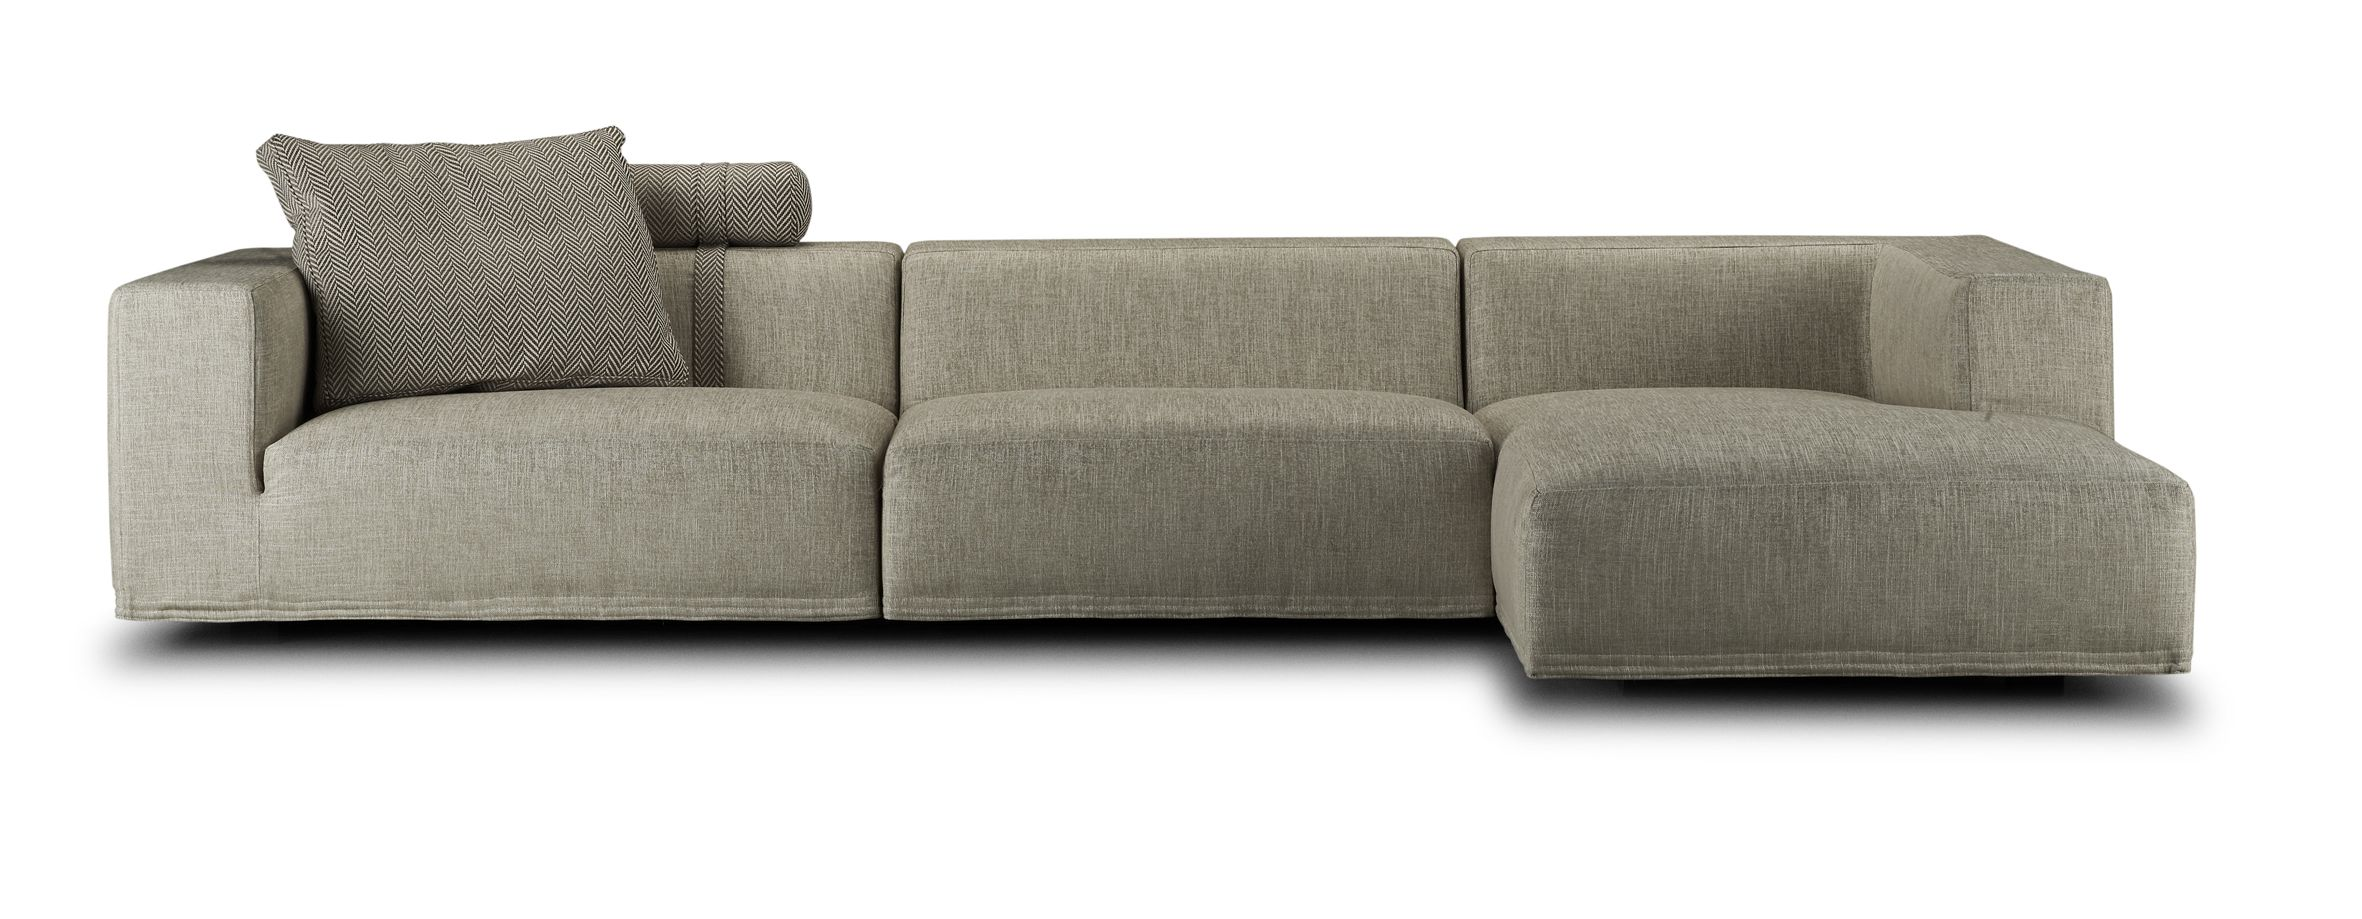 eilersen baseline 3 piece sectional available either left or